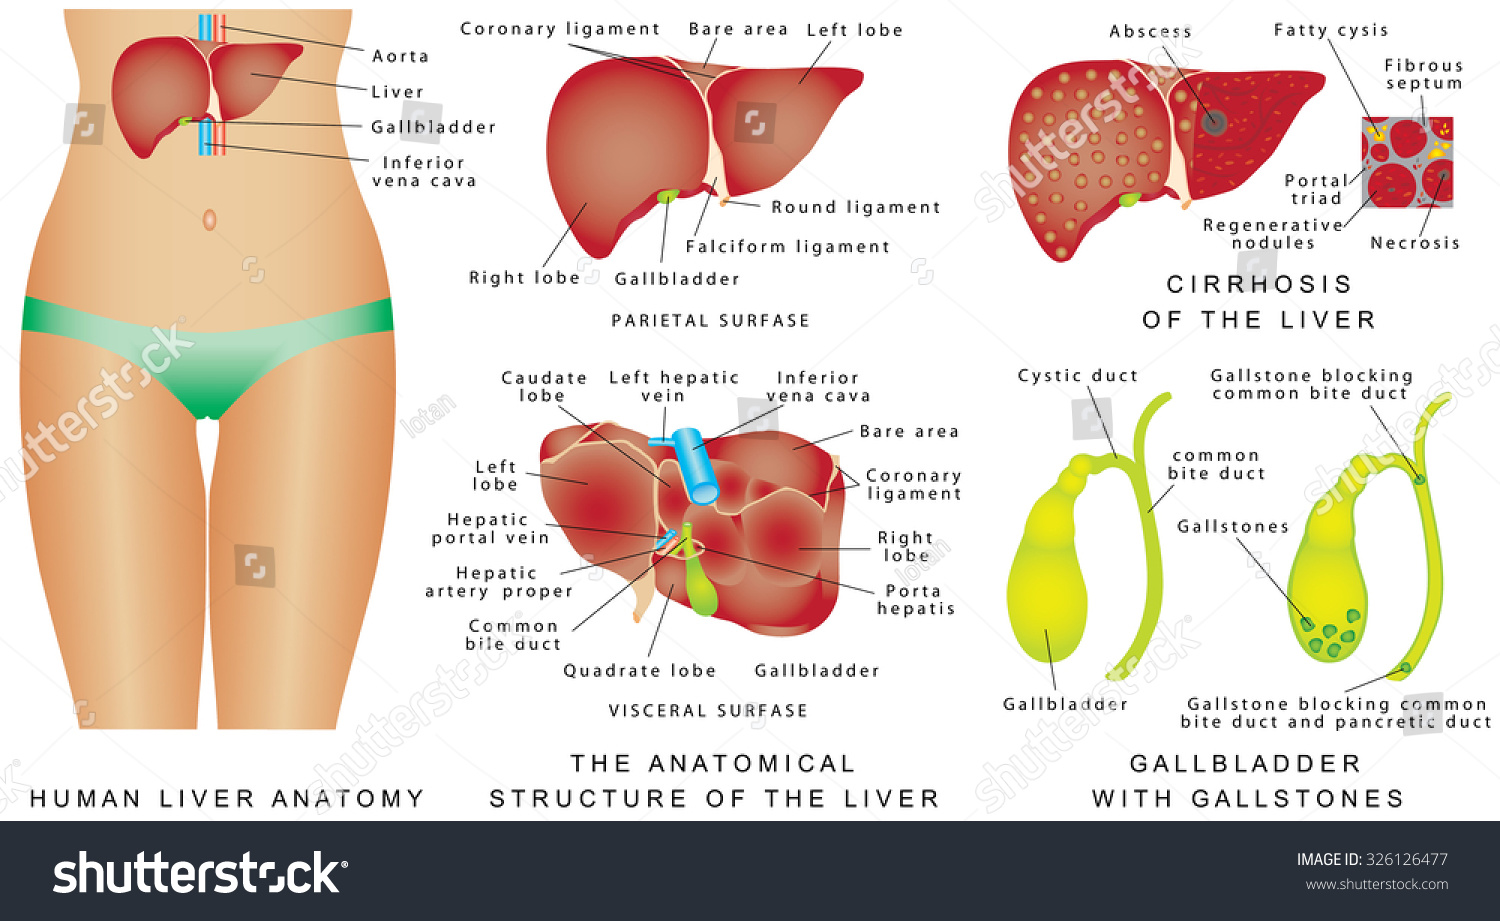 Liver Gallbladder Cirrhosis Major Anatomical Landmarks Stock Vector ...